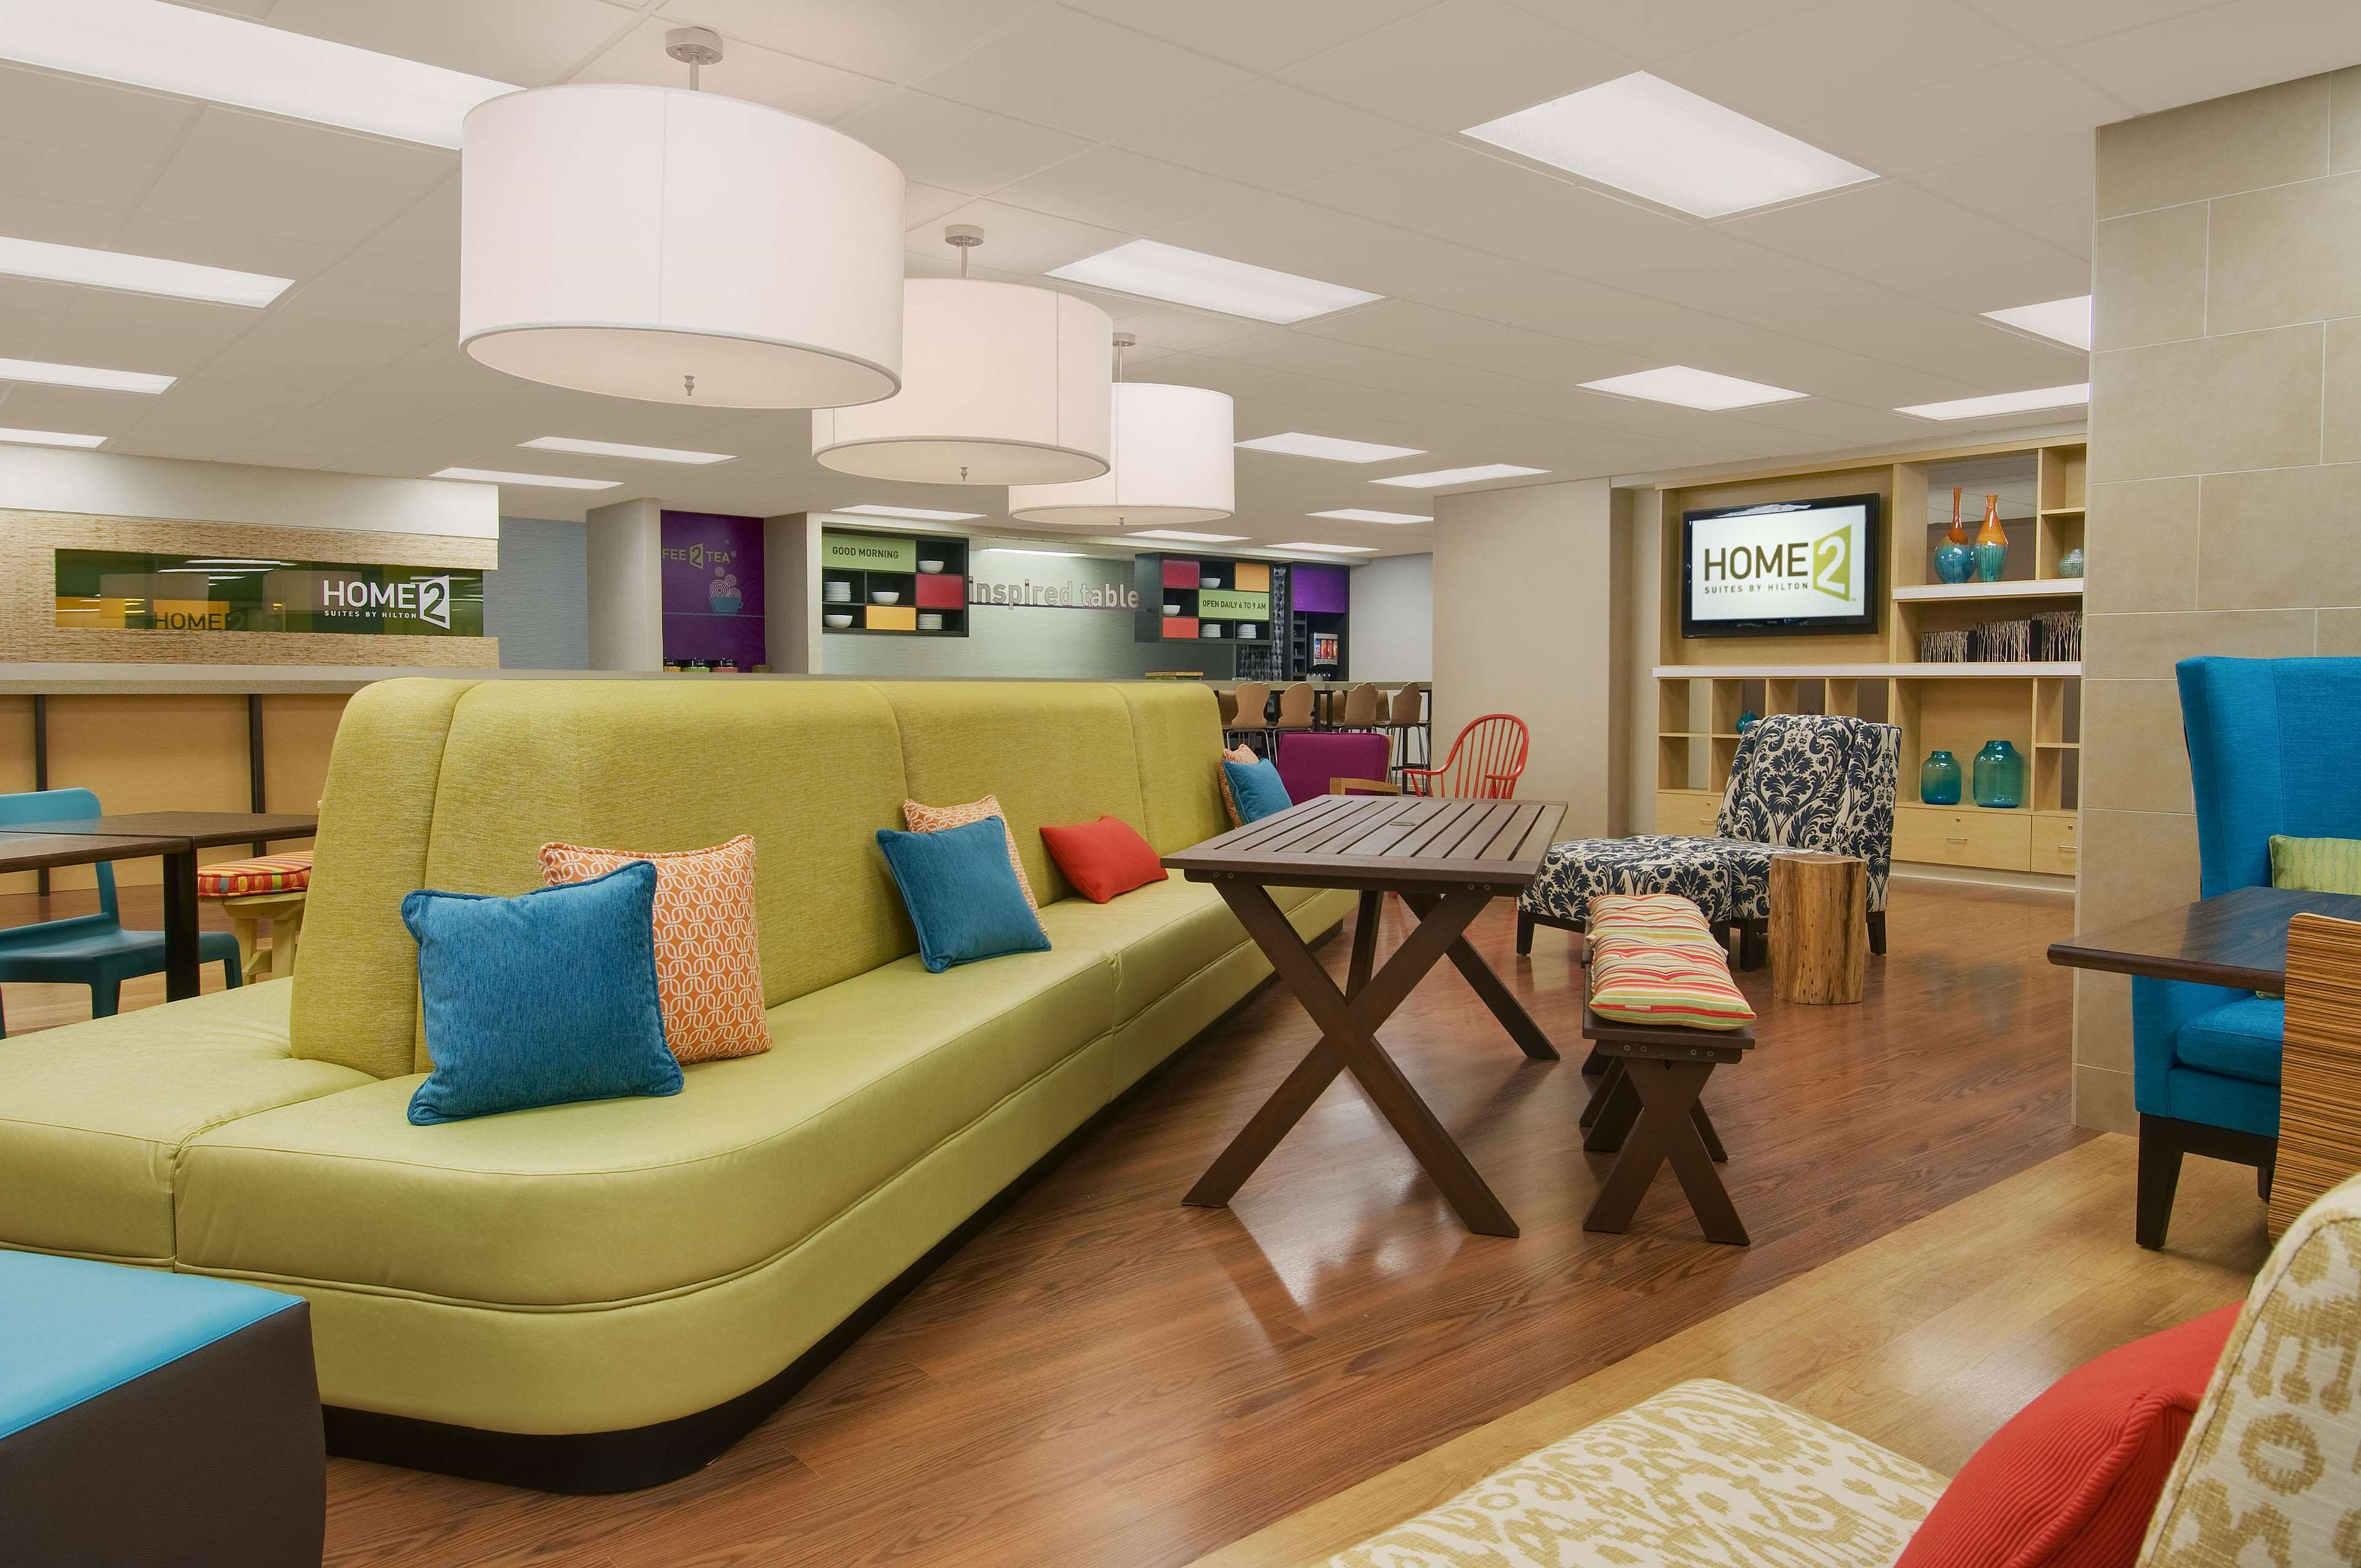 Home2 Suites By Hilton Orlando Airport image 1